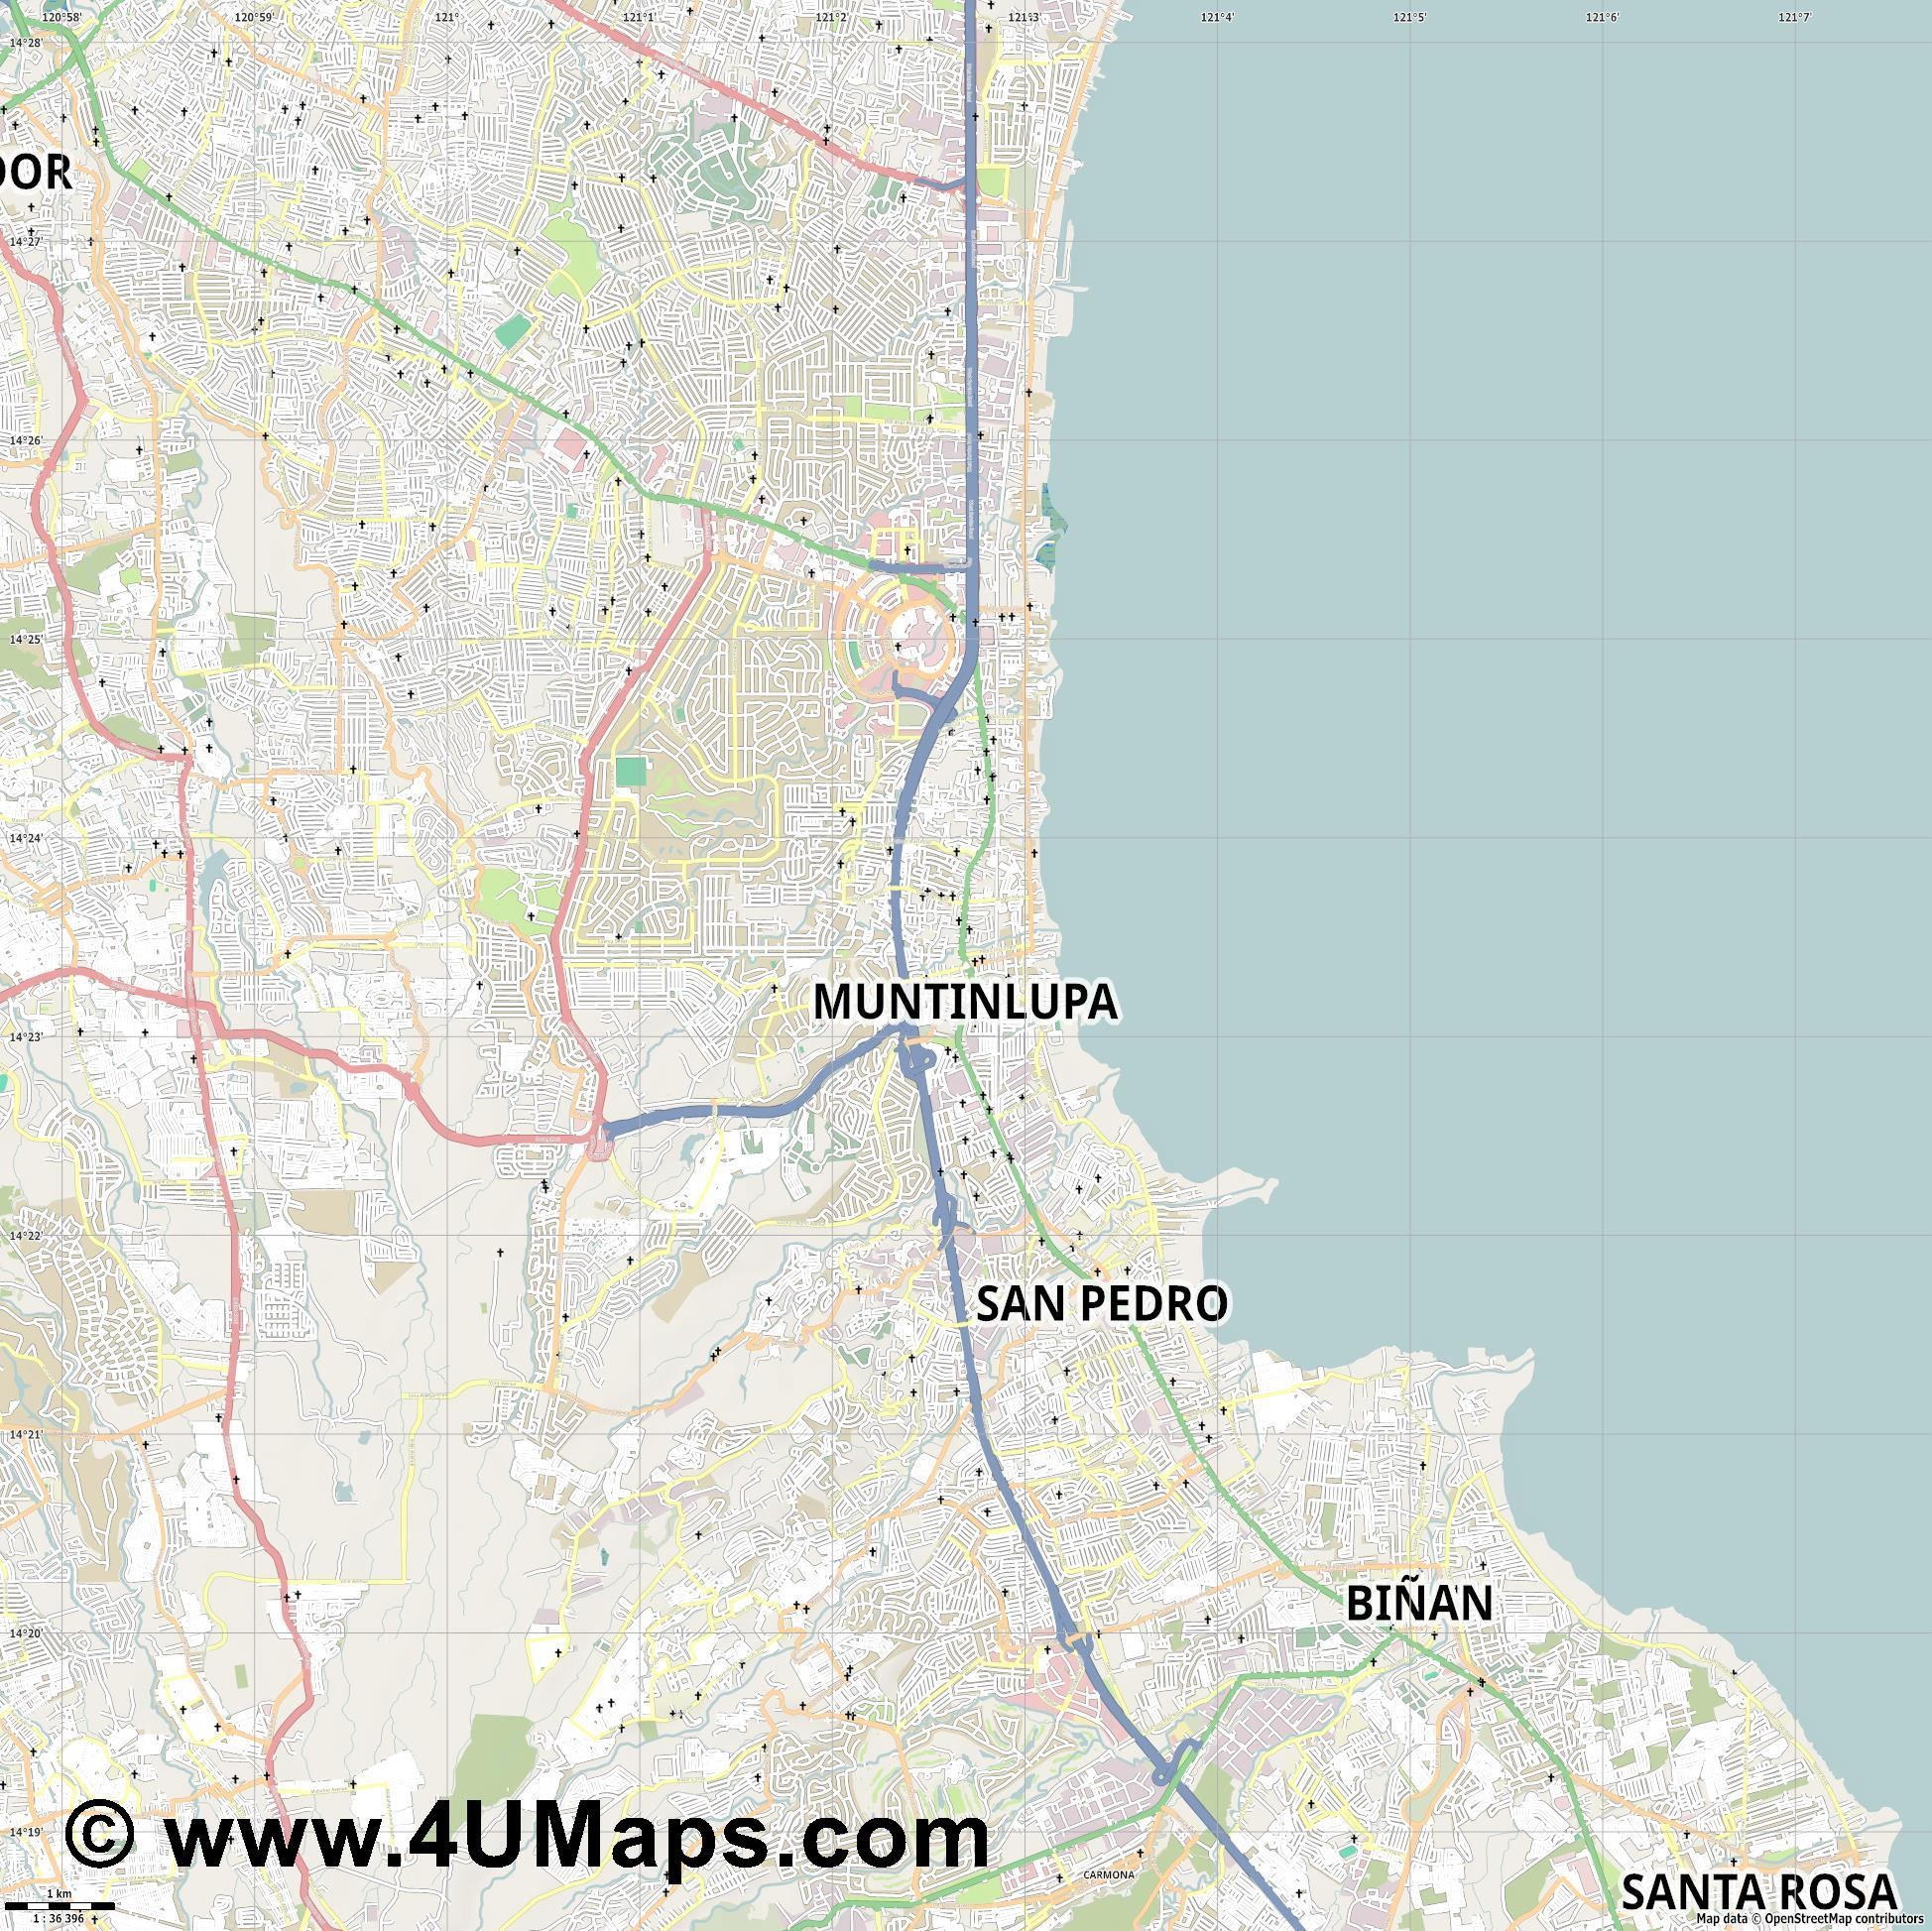 Muntinlupa  jpg high detail, large area preview vector city map